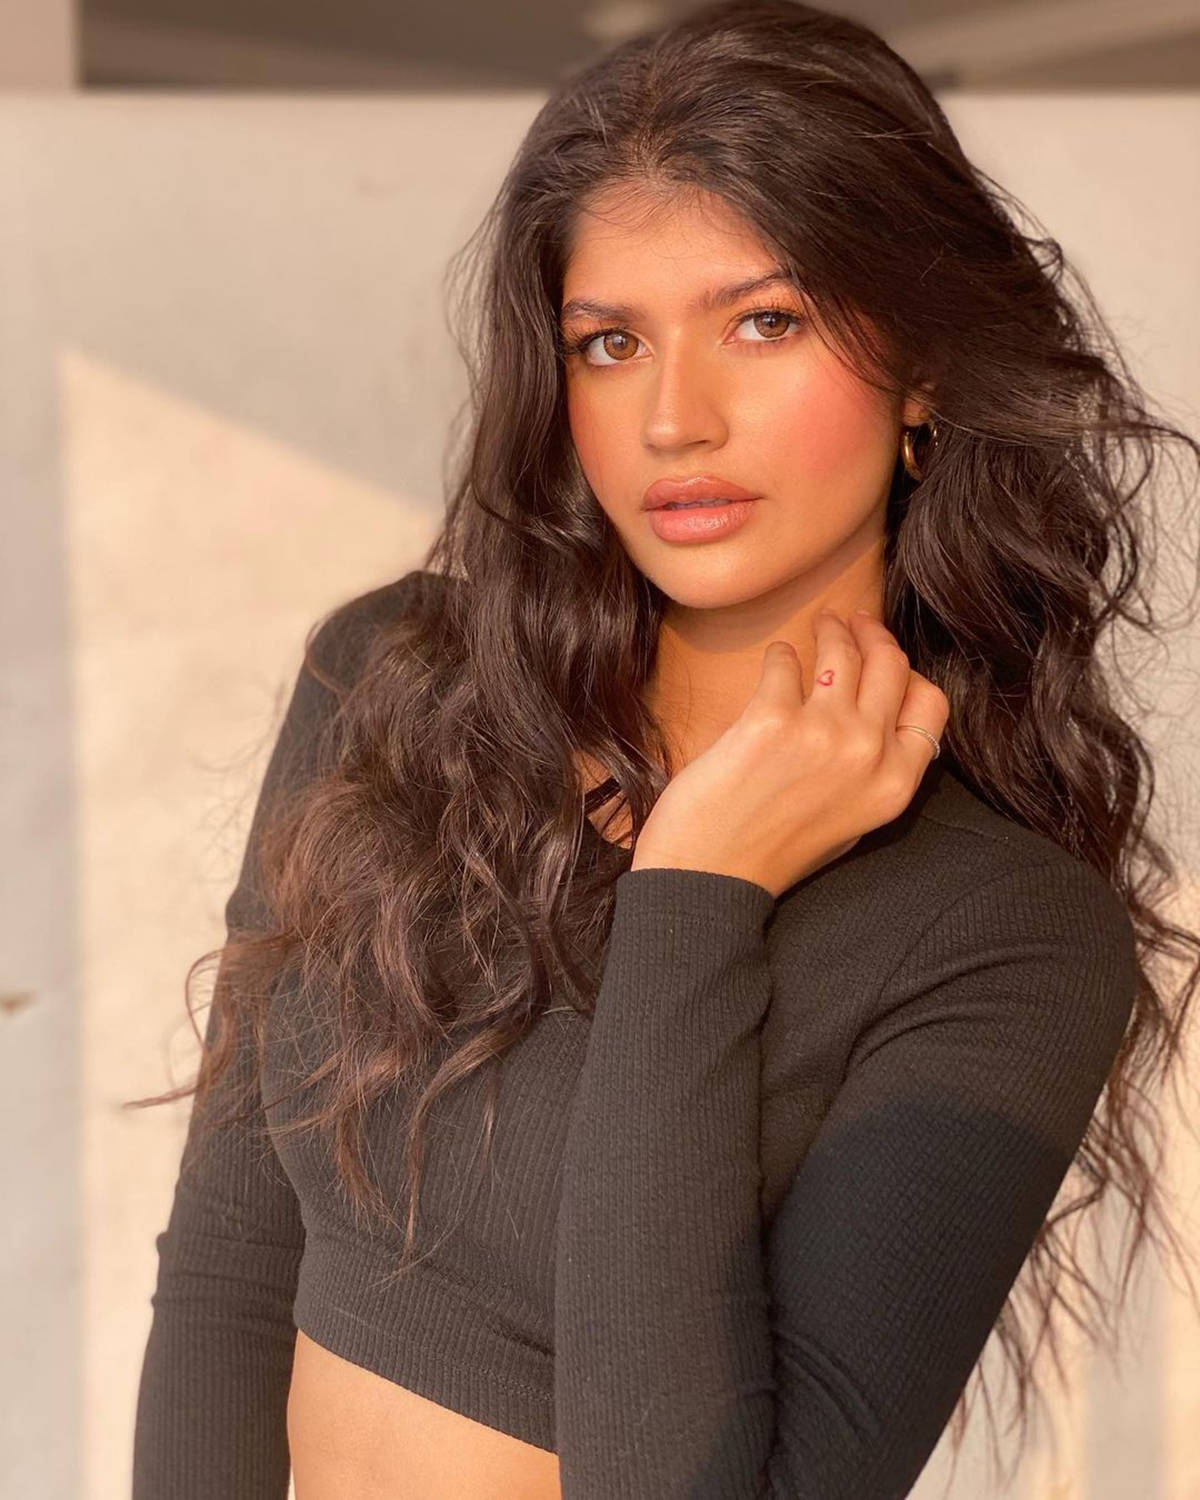 Anjini Dhawan can surely give newcomers a run for their money